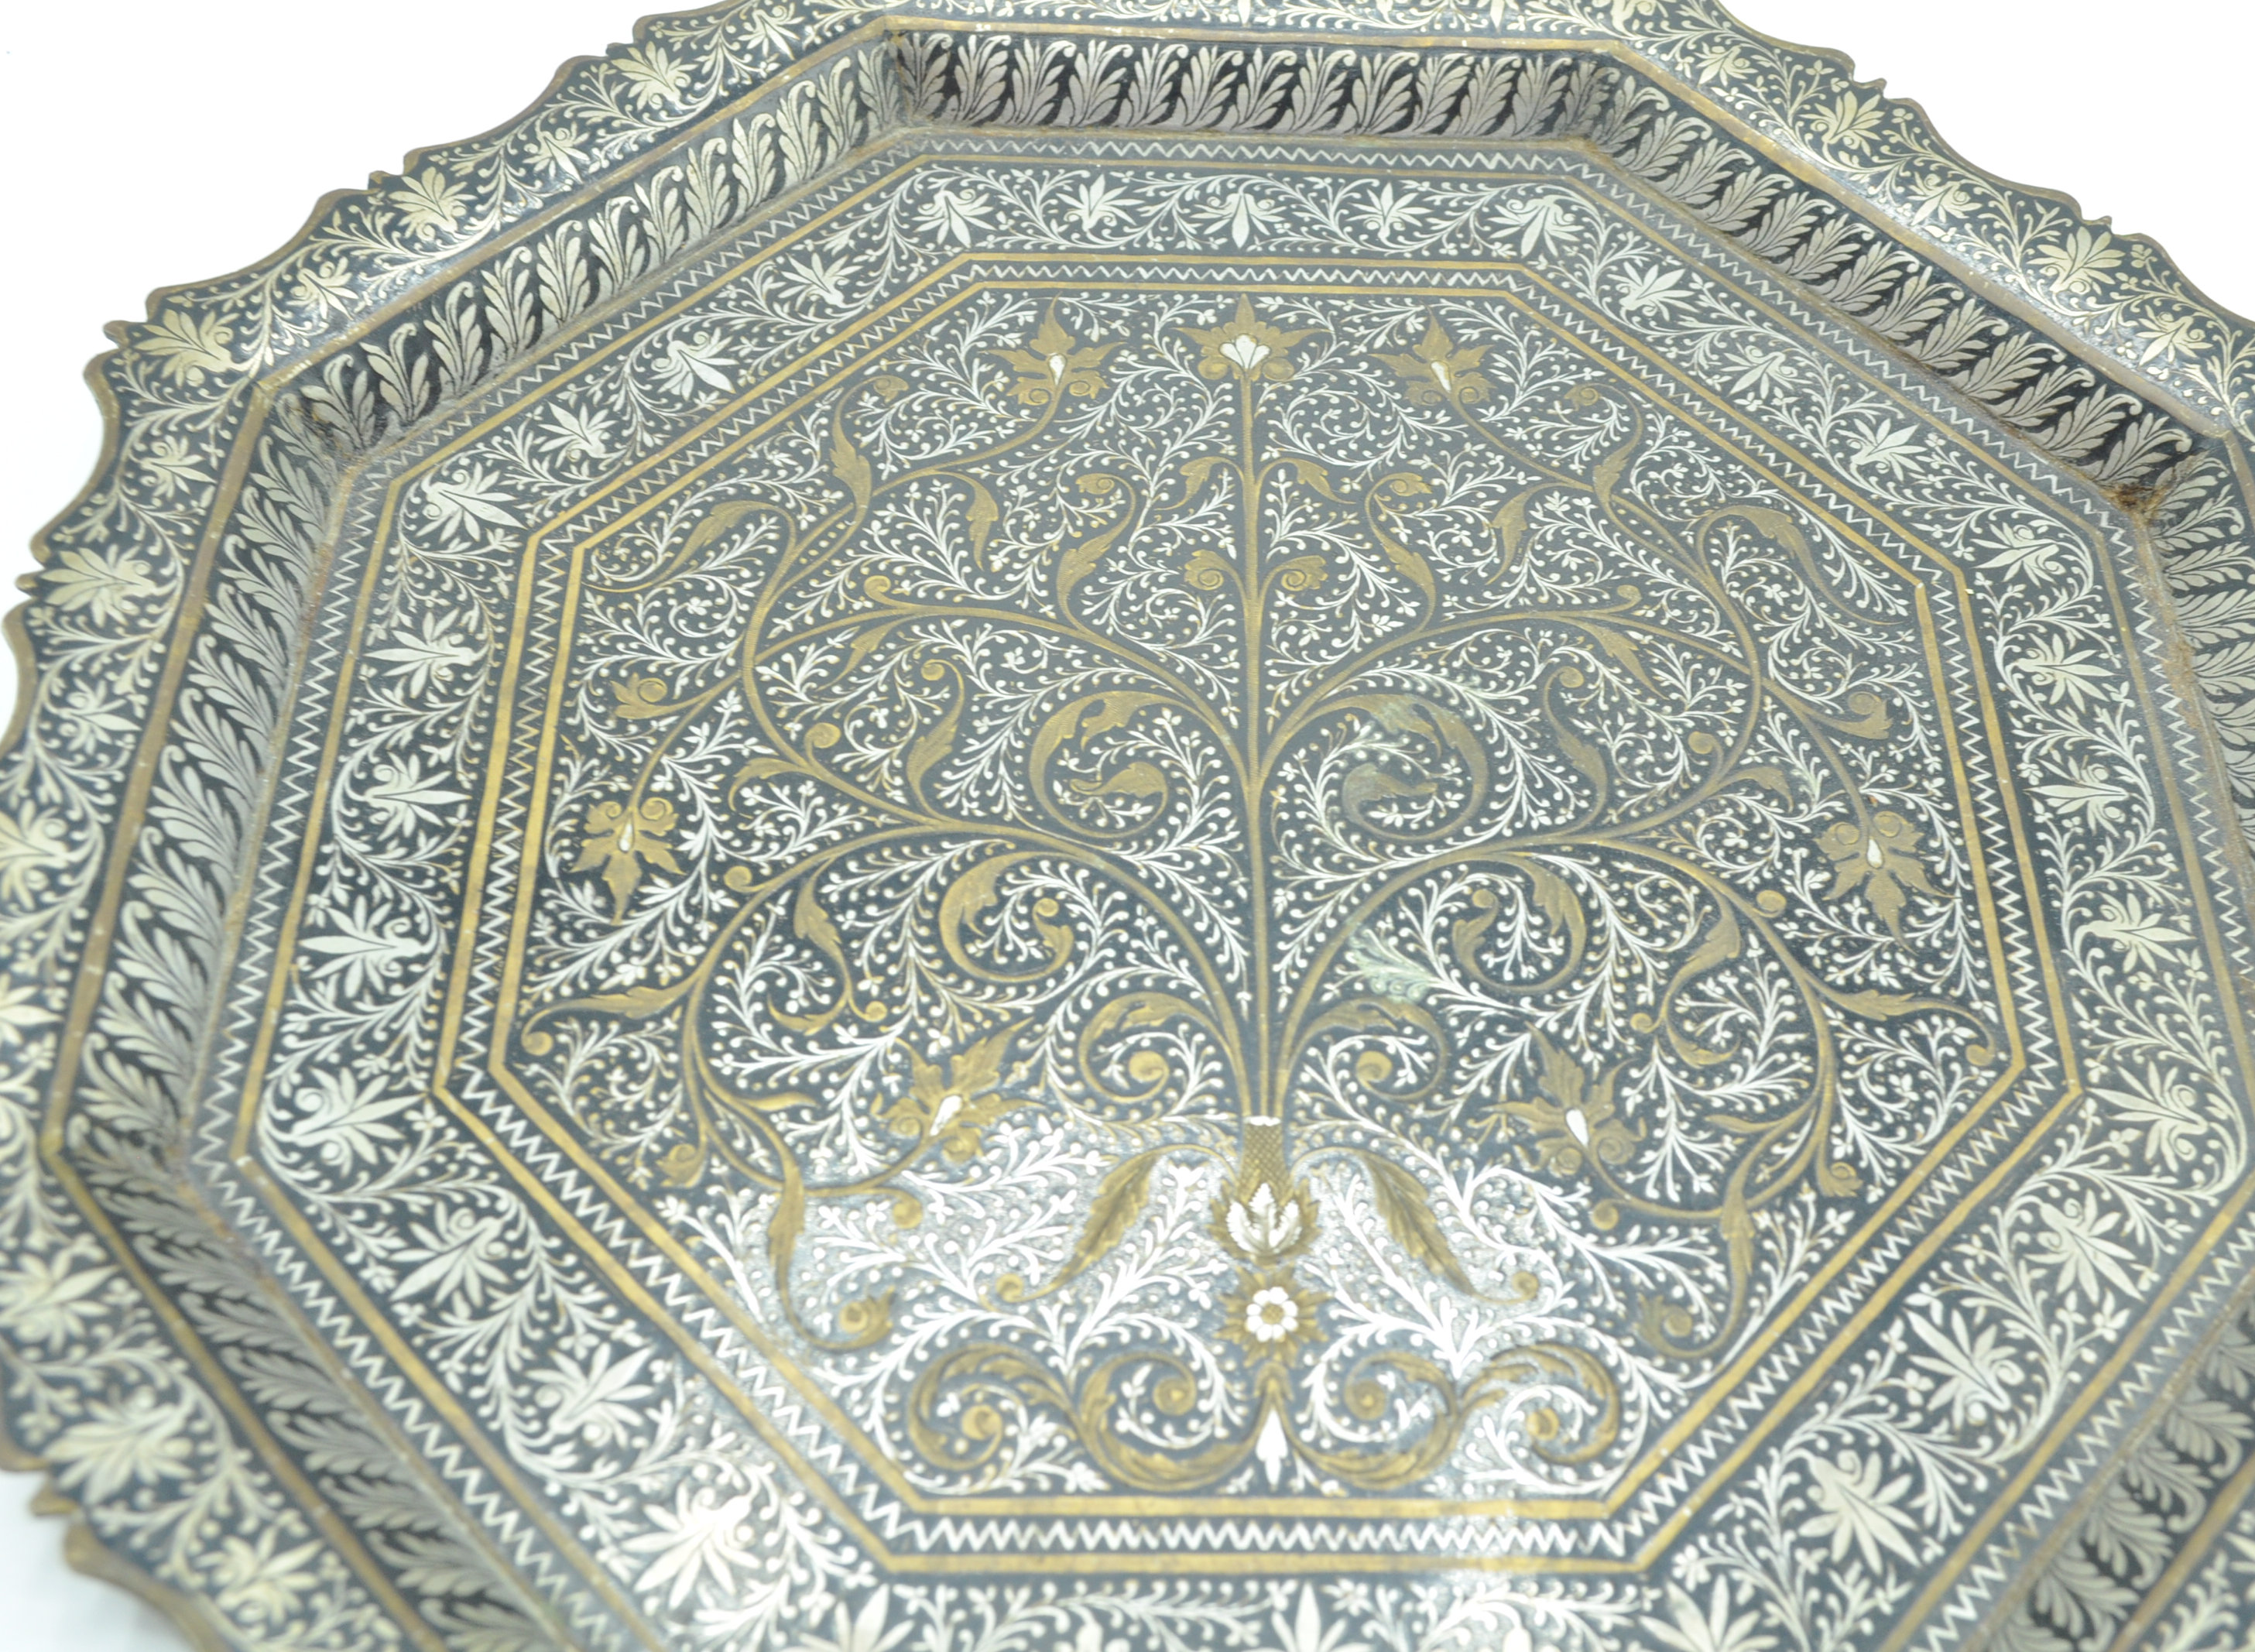 ISLAMIC SILVER PLATE AND BRASS CARD TRAY SALVER - Image 3 of 6